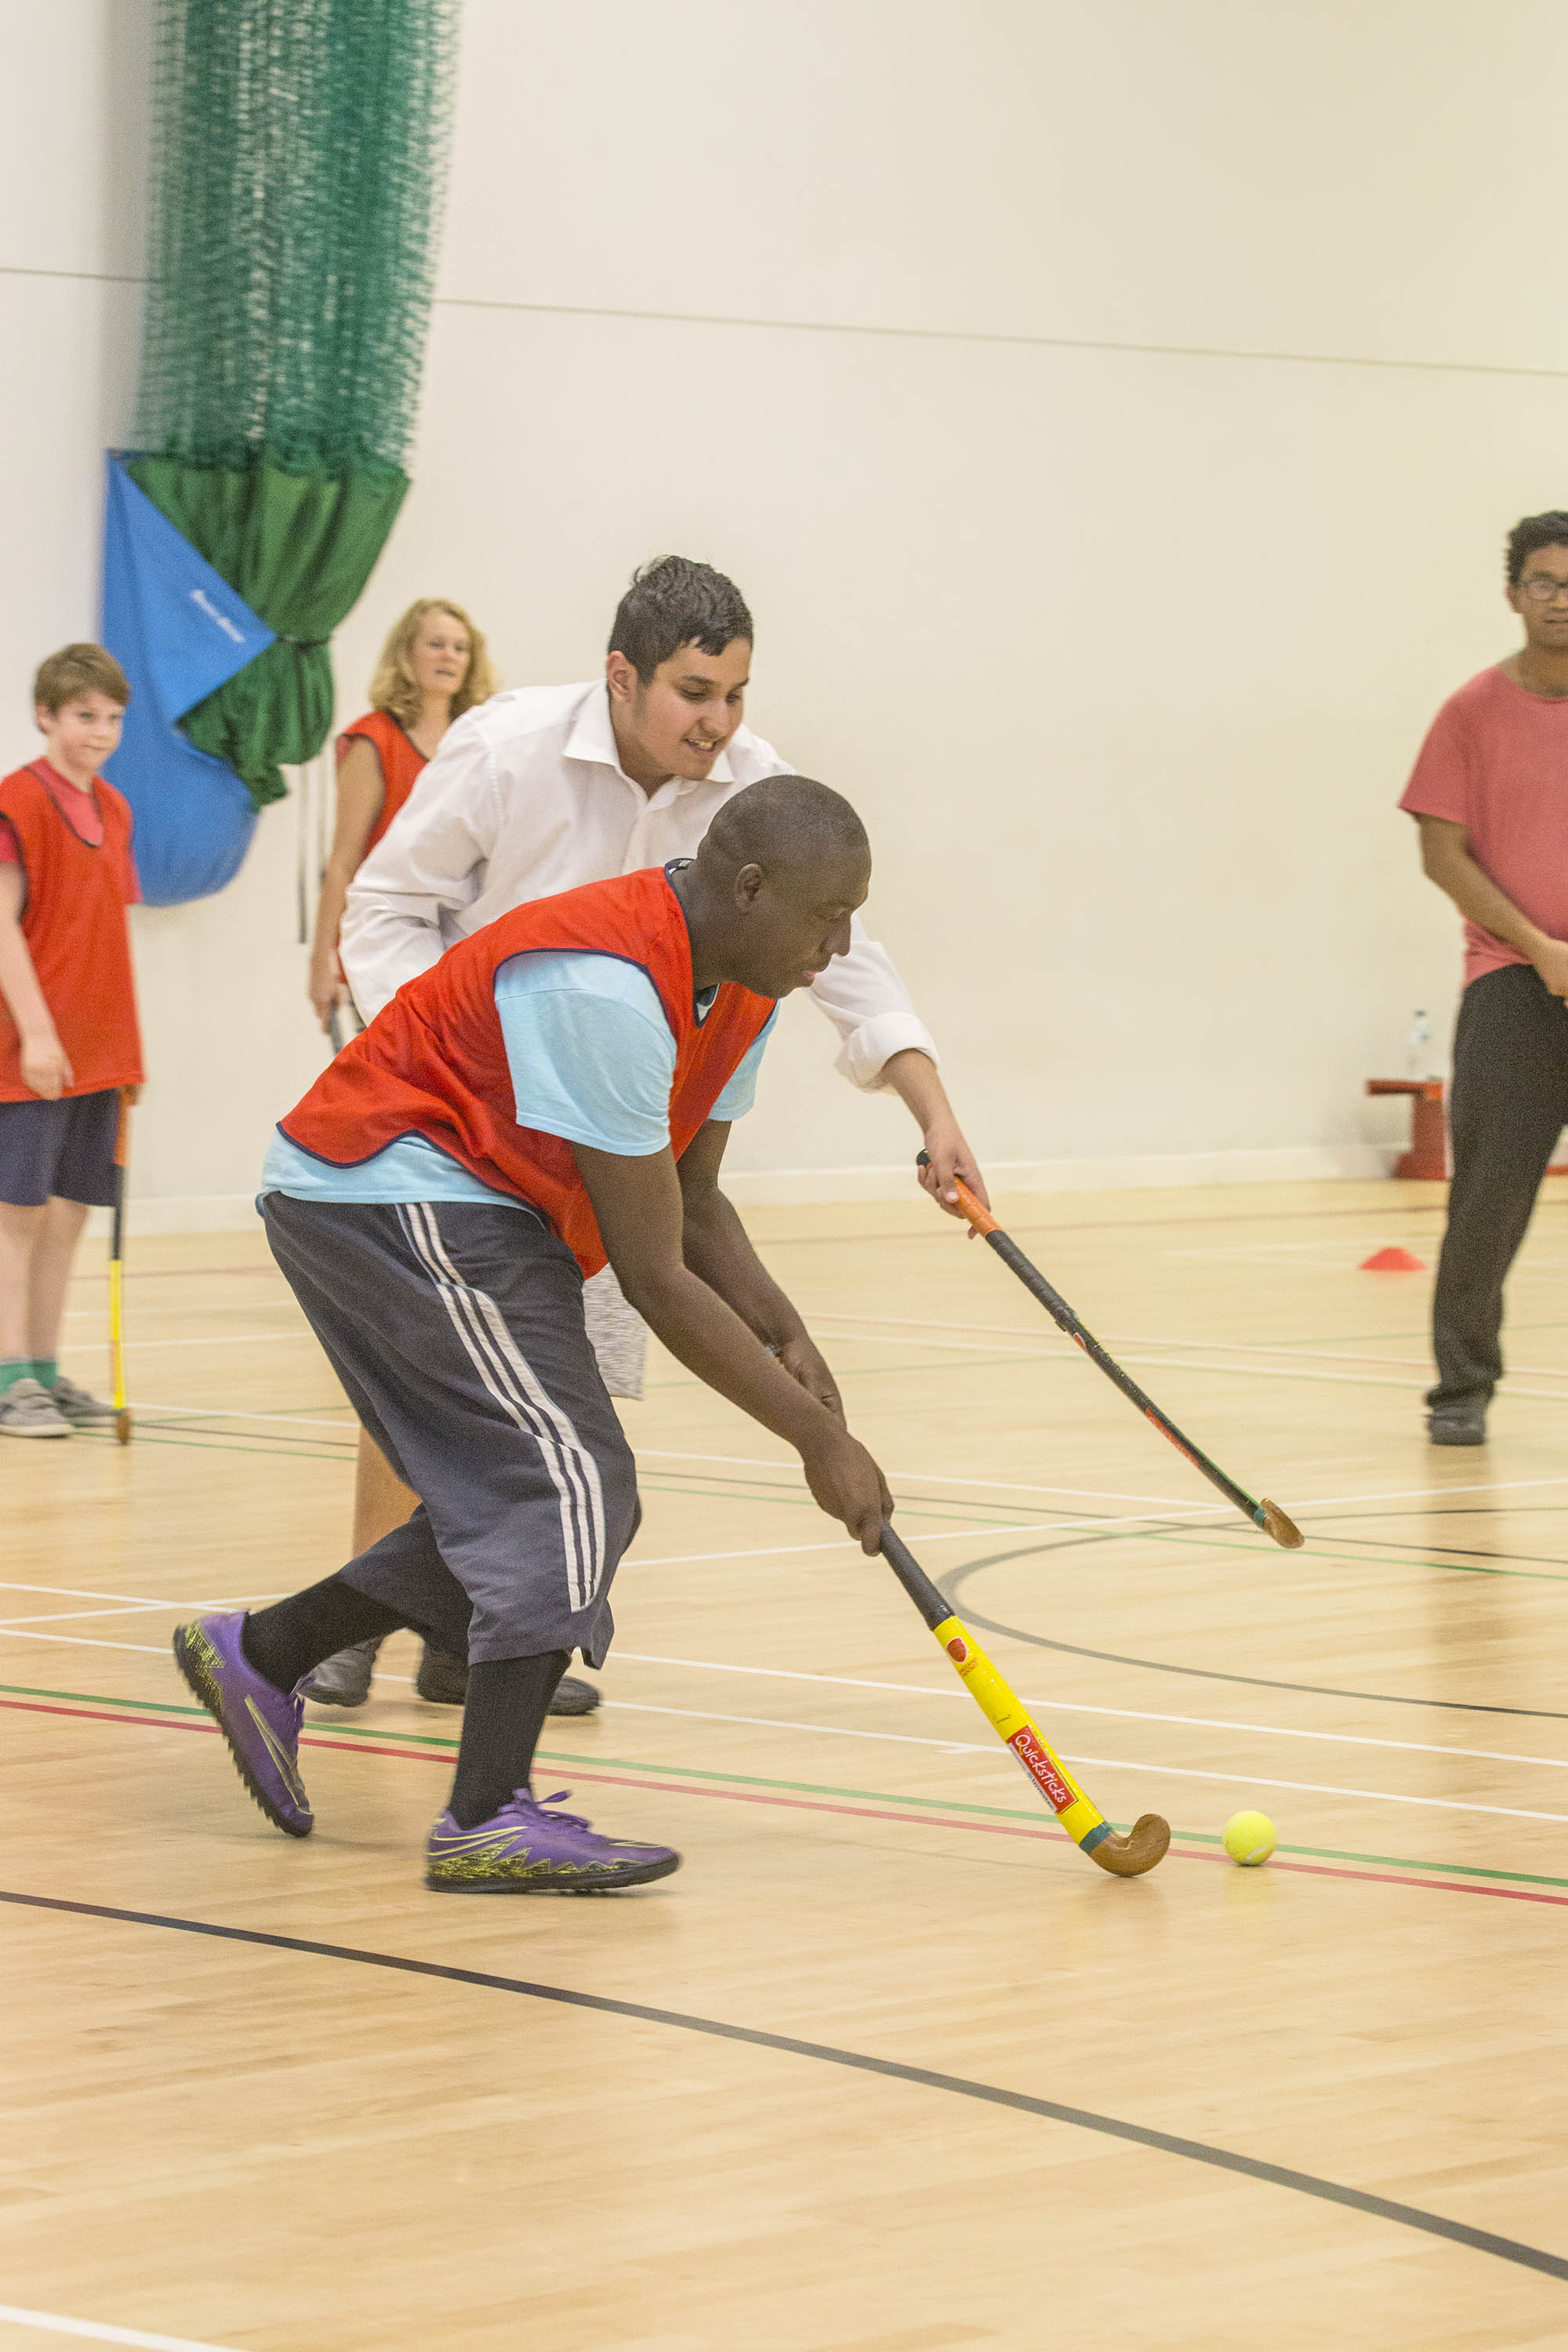 group of people playing indoor hockey